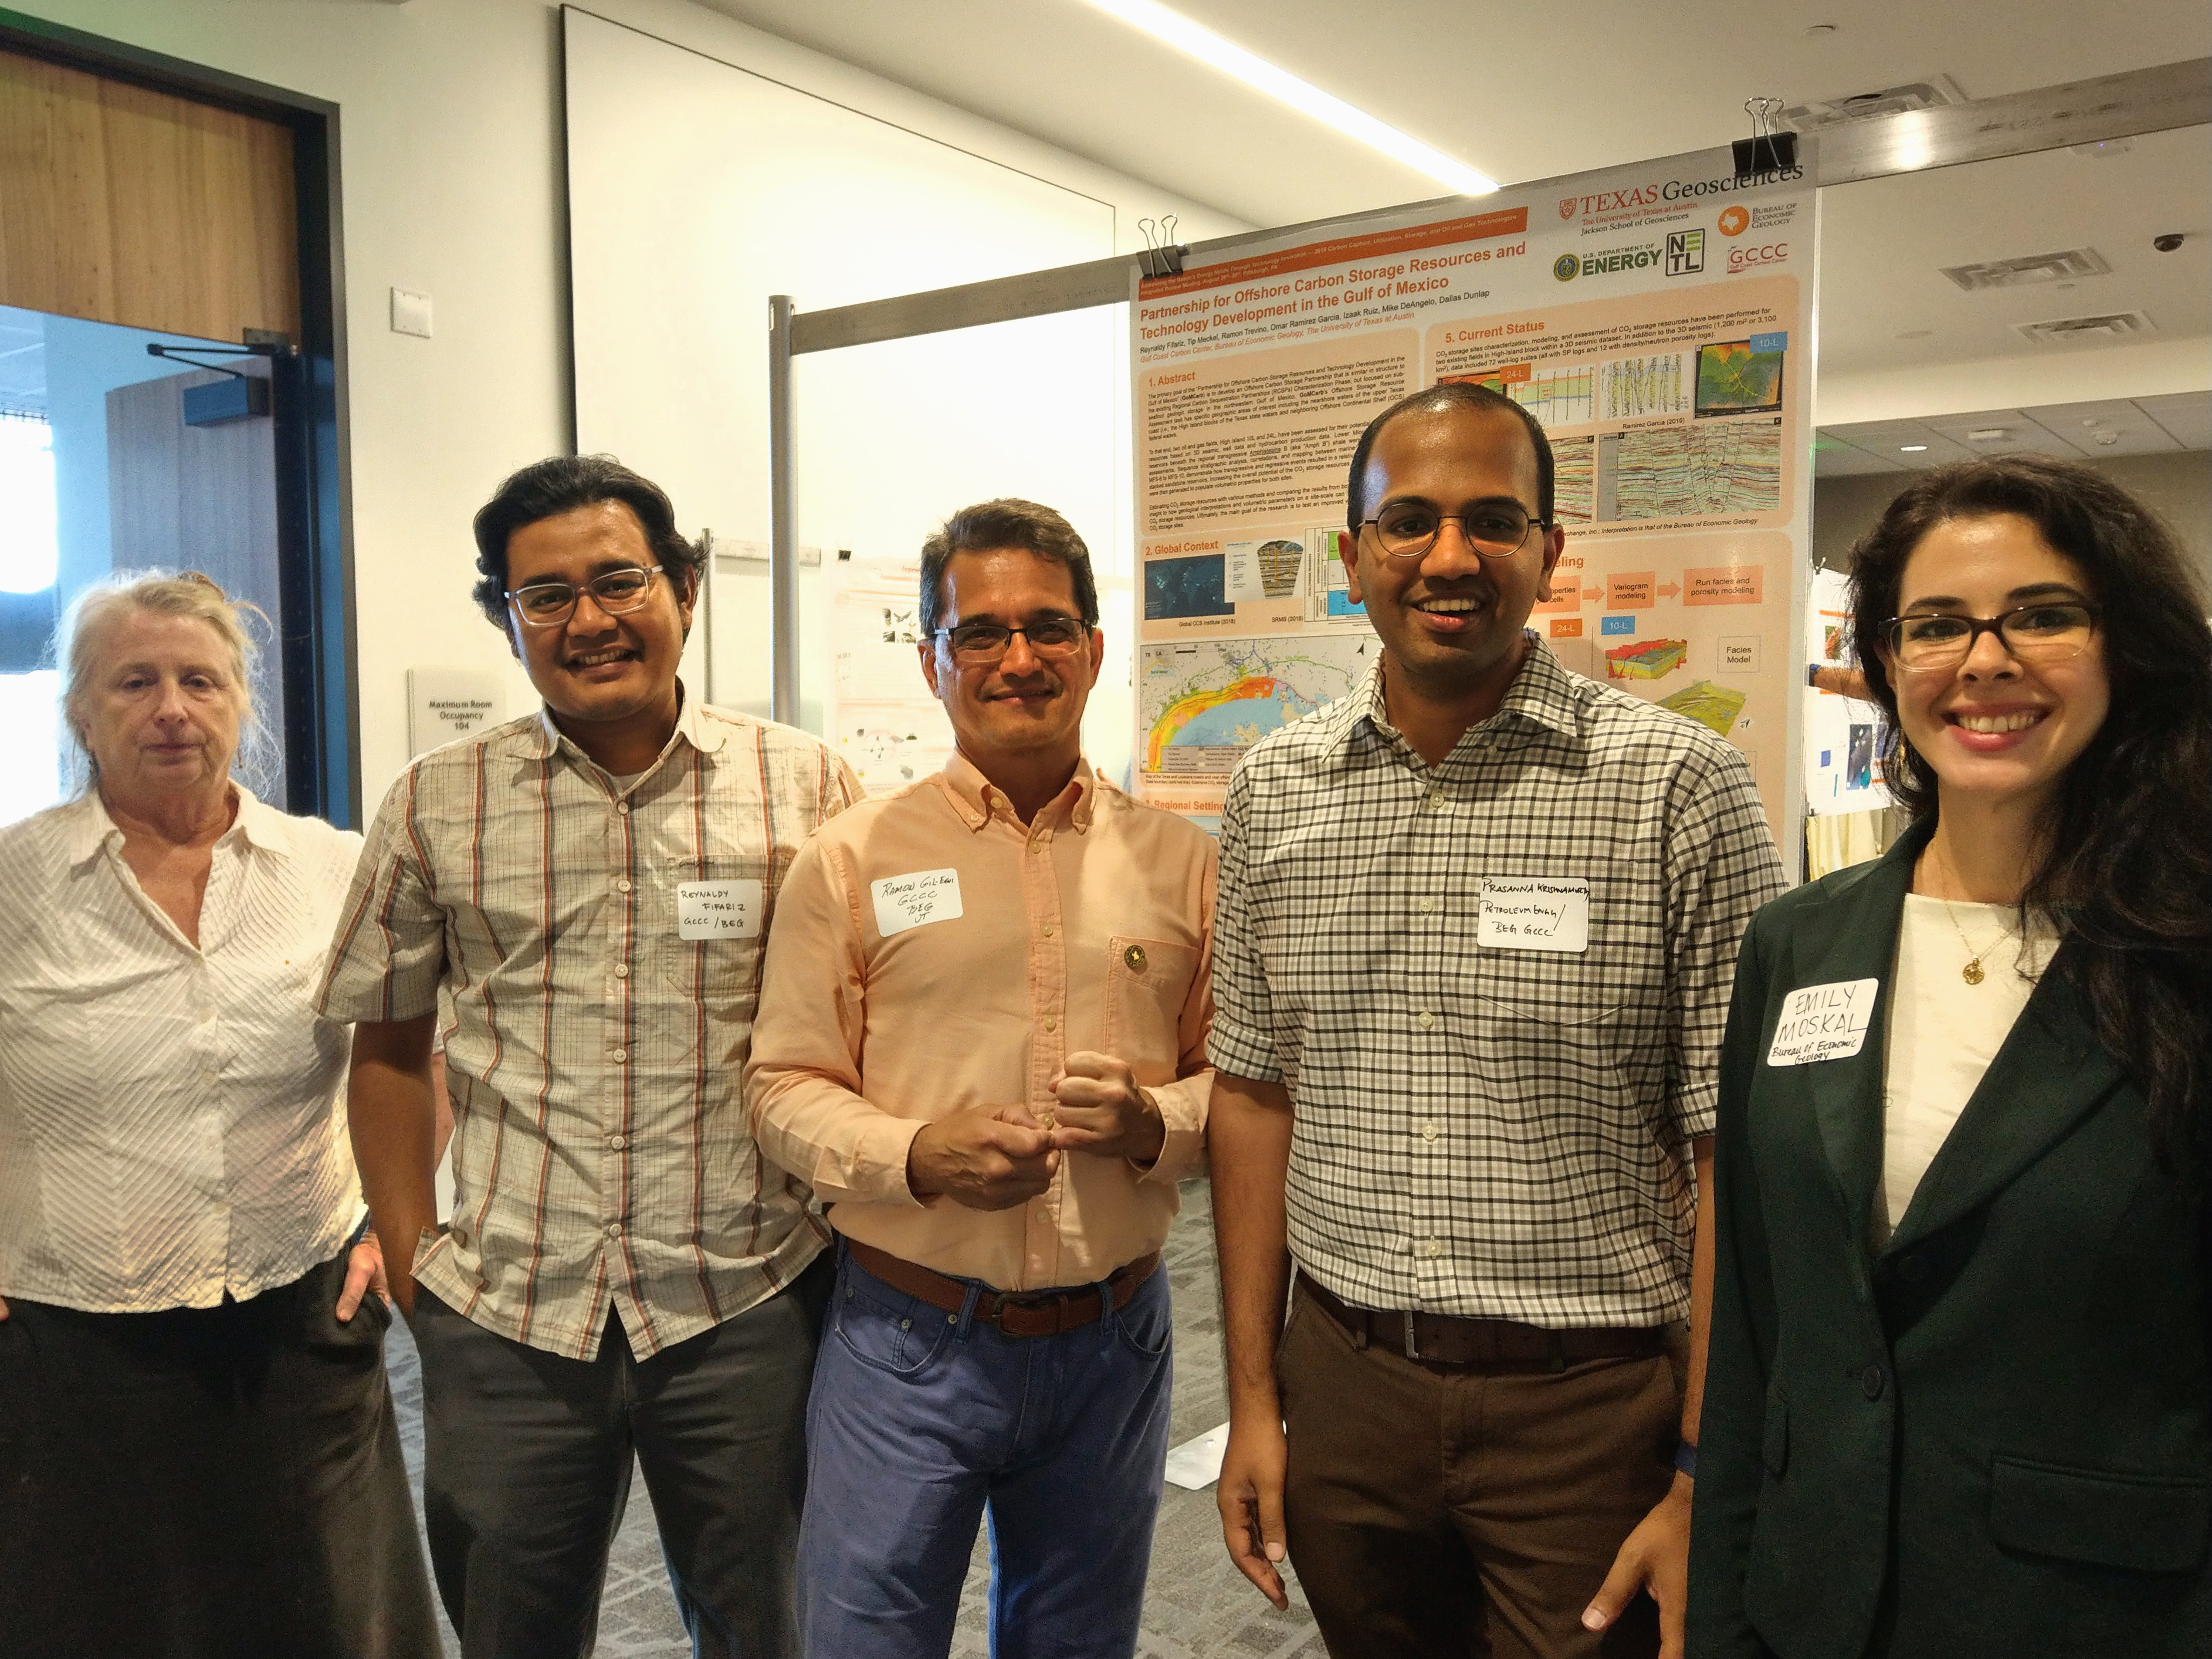 Five GCCC researchers stand in front of one of the posters presented at the expo